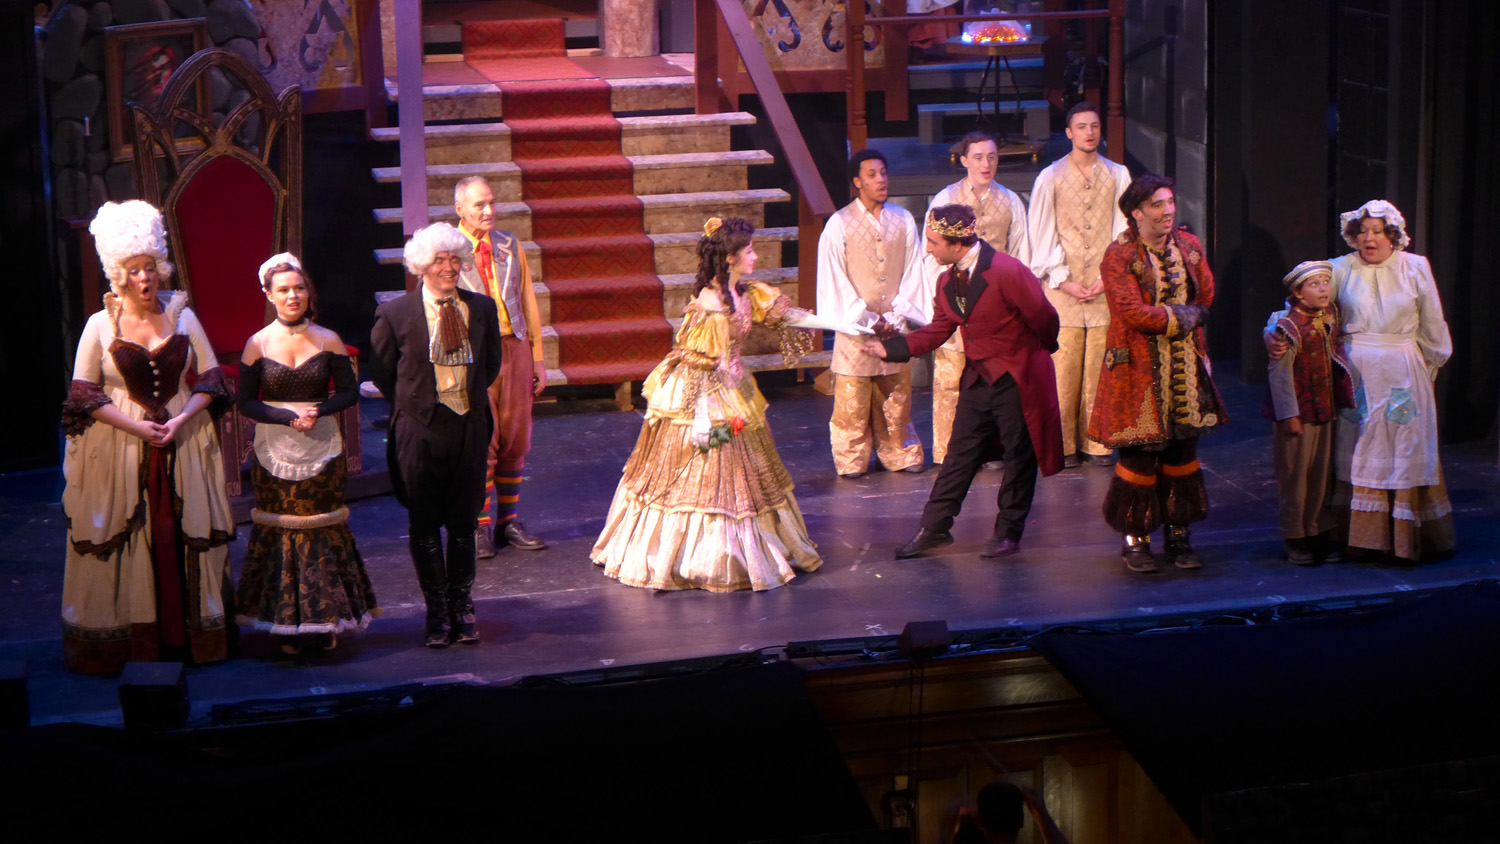 In The Wings' Beauty and the Beast at Snug Harbor Cultural Center